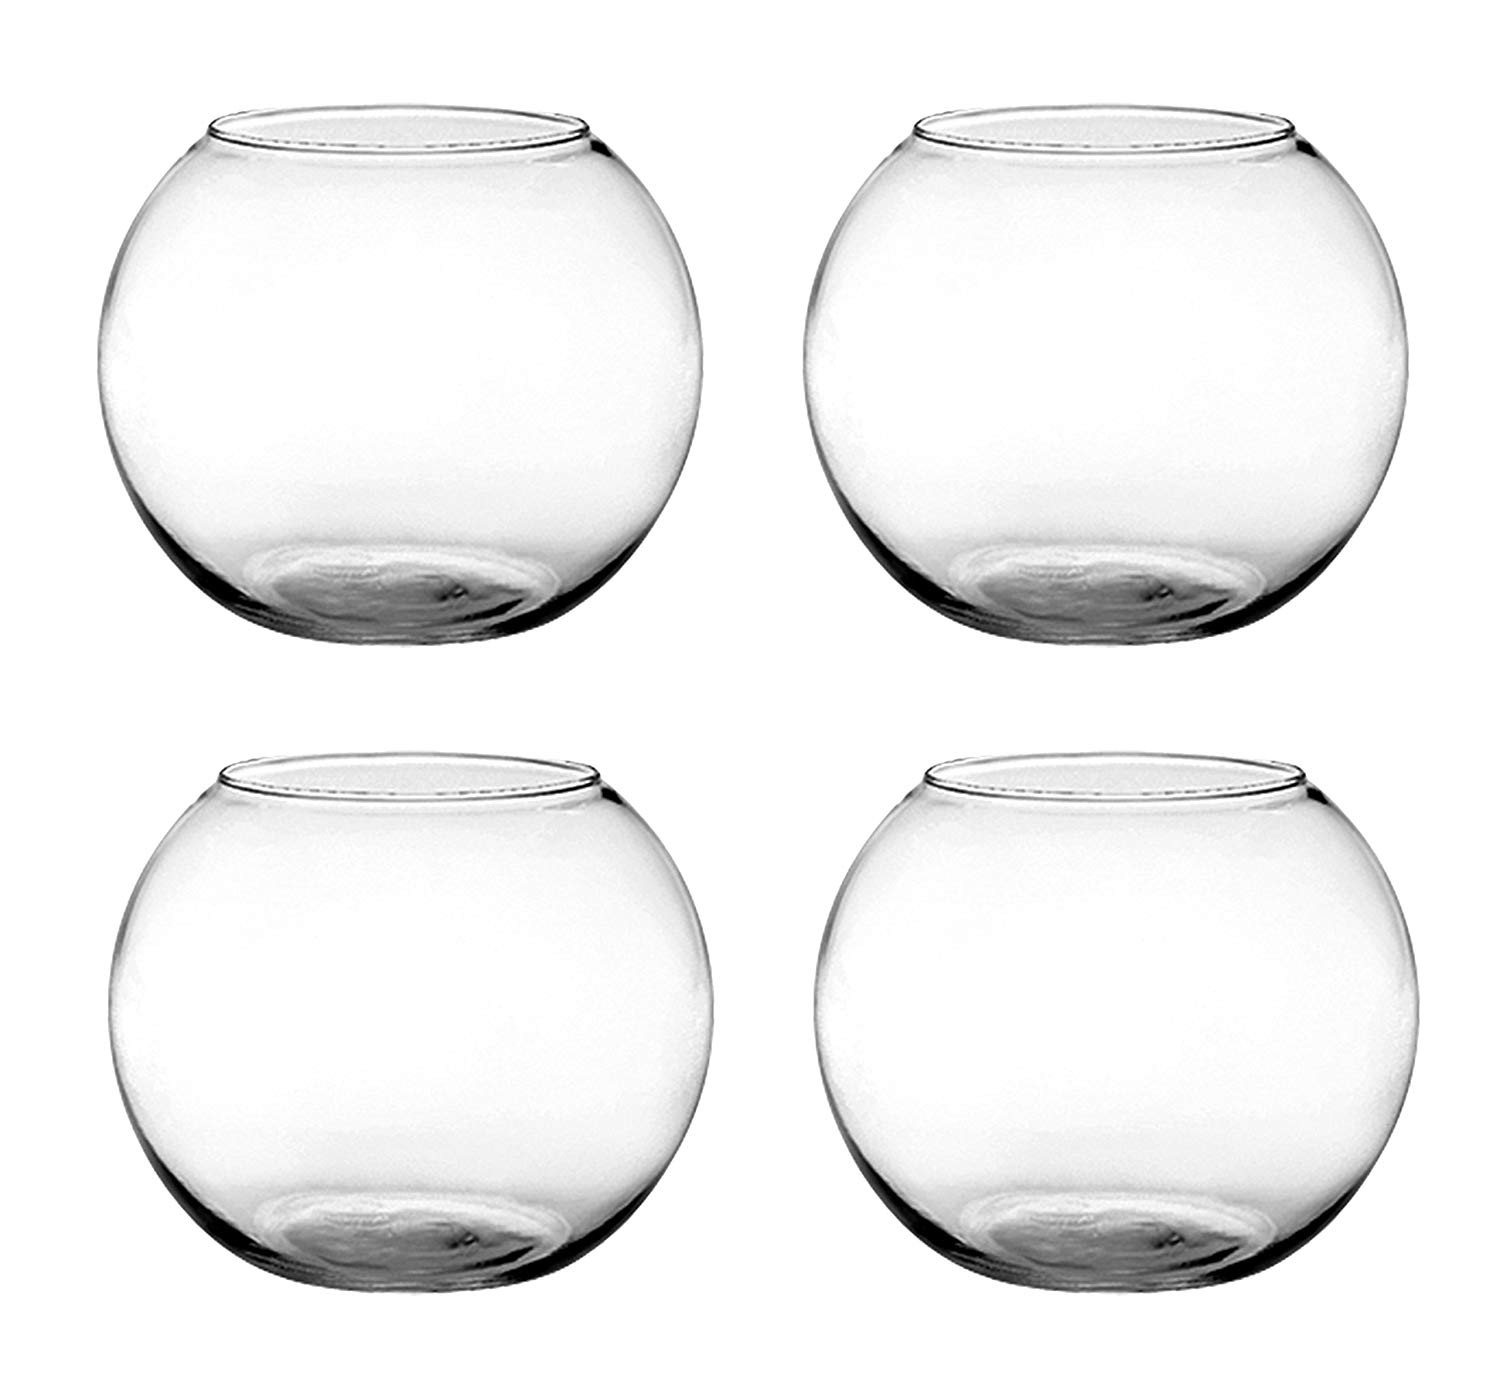 fish bowl flower vase of amazon com set of 4 syndicate sales 6 inches clear rose bowl throughout amazon com set of 4 syndicate sales 6 inches clear rose bowl bundled by maven gifts garden outdoor